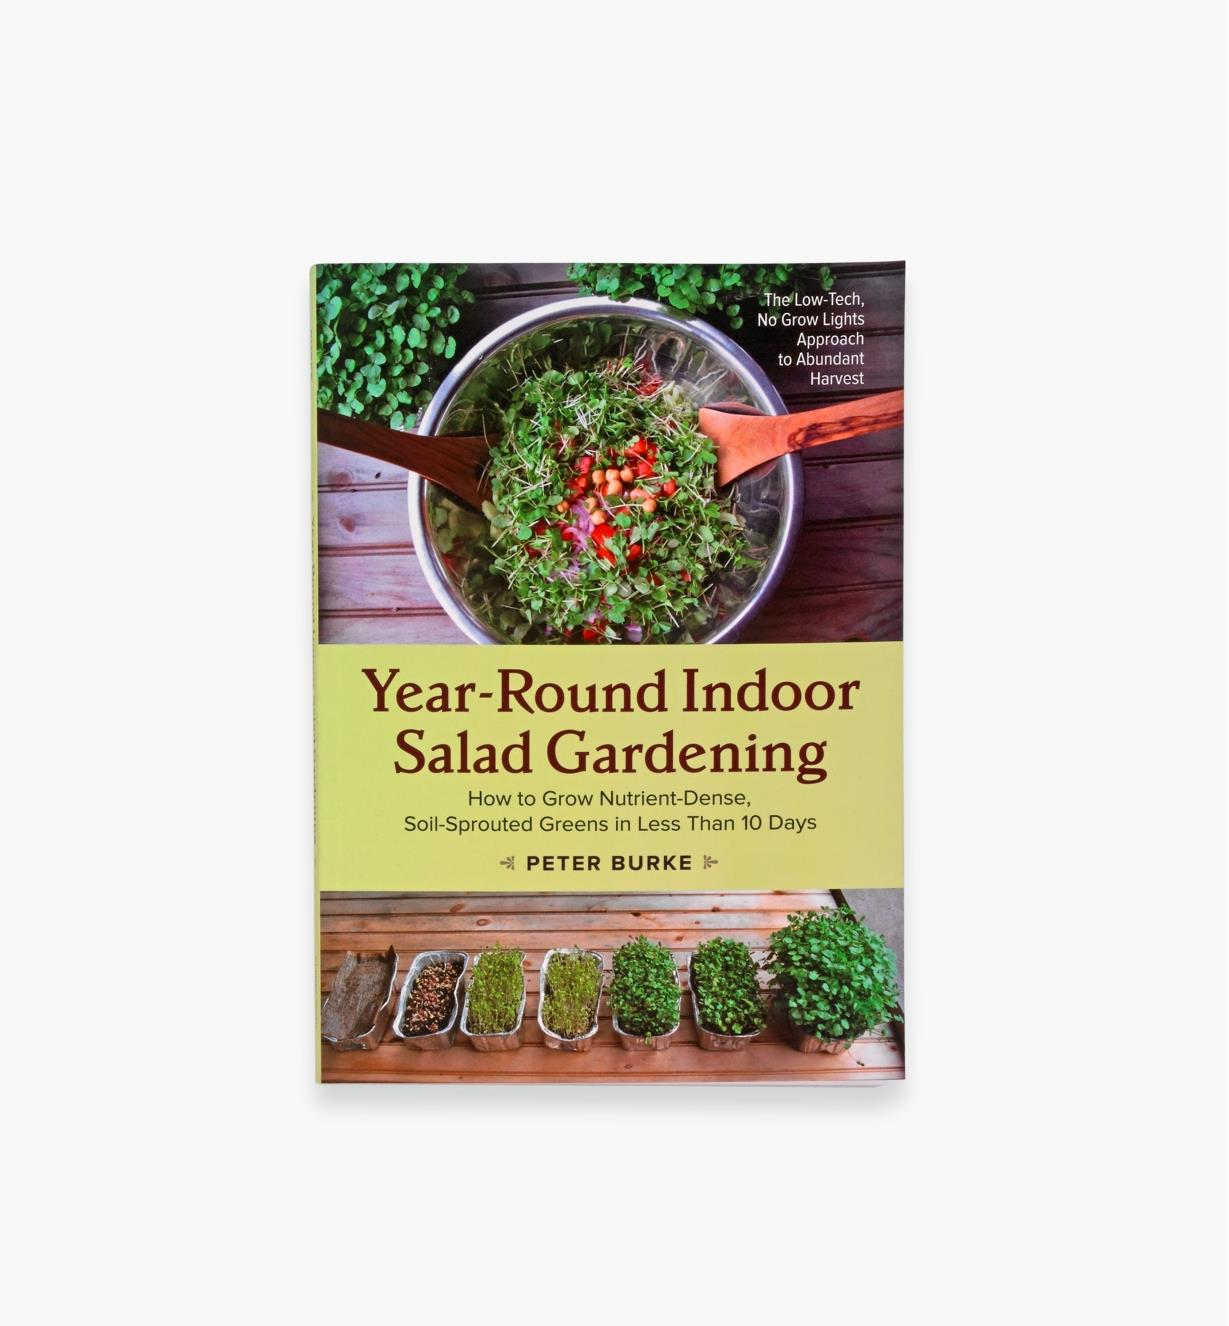 LA572 - Year-Round Indoor Salad Gardening